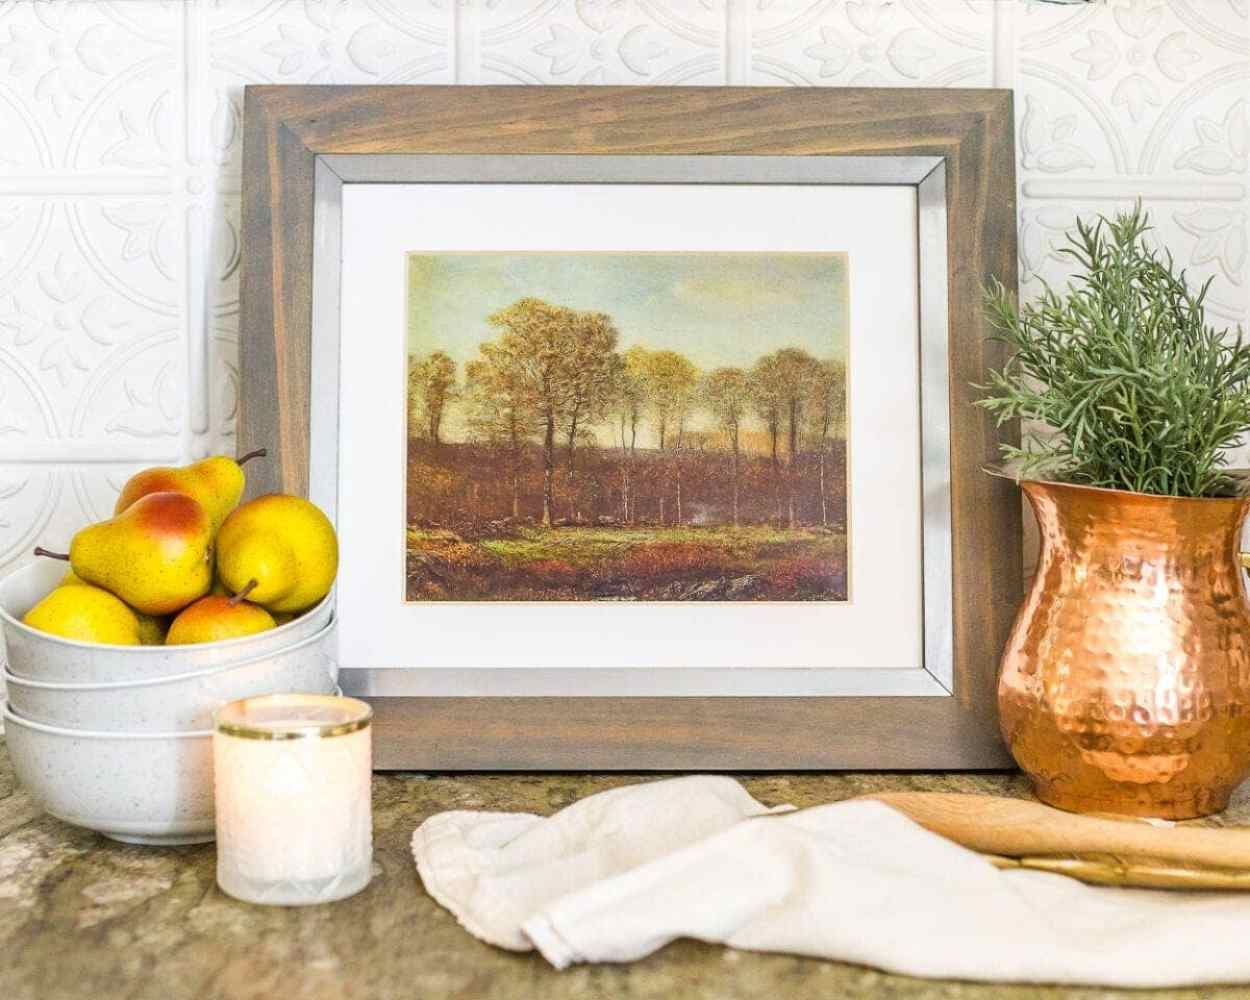 Access to a free autumn landscape art printable that you can print directly from your home printer and frame for budget-friendly fall decor.